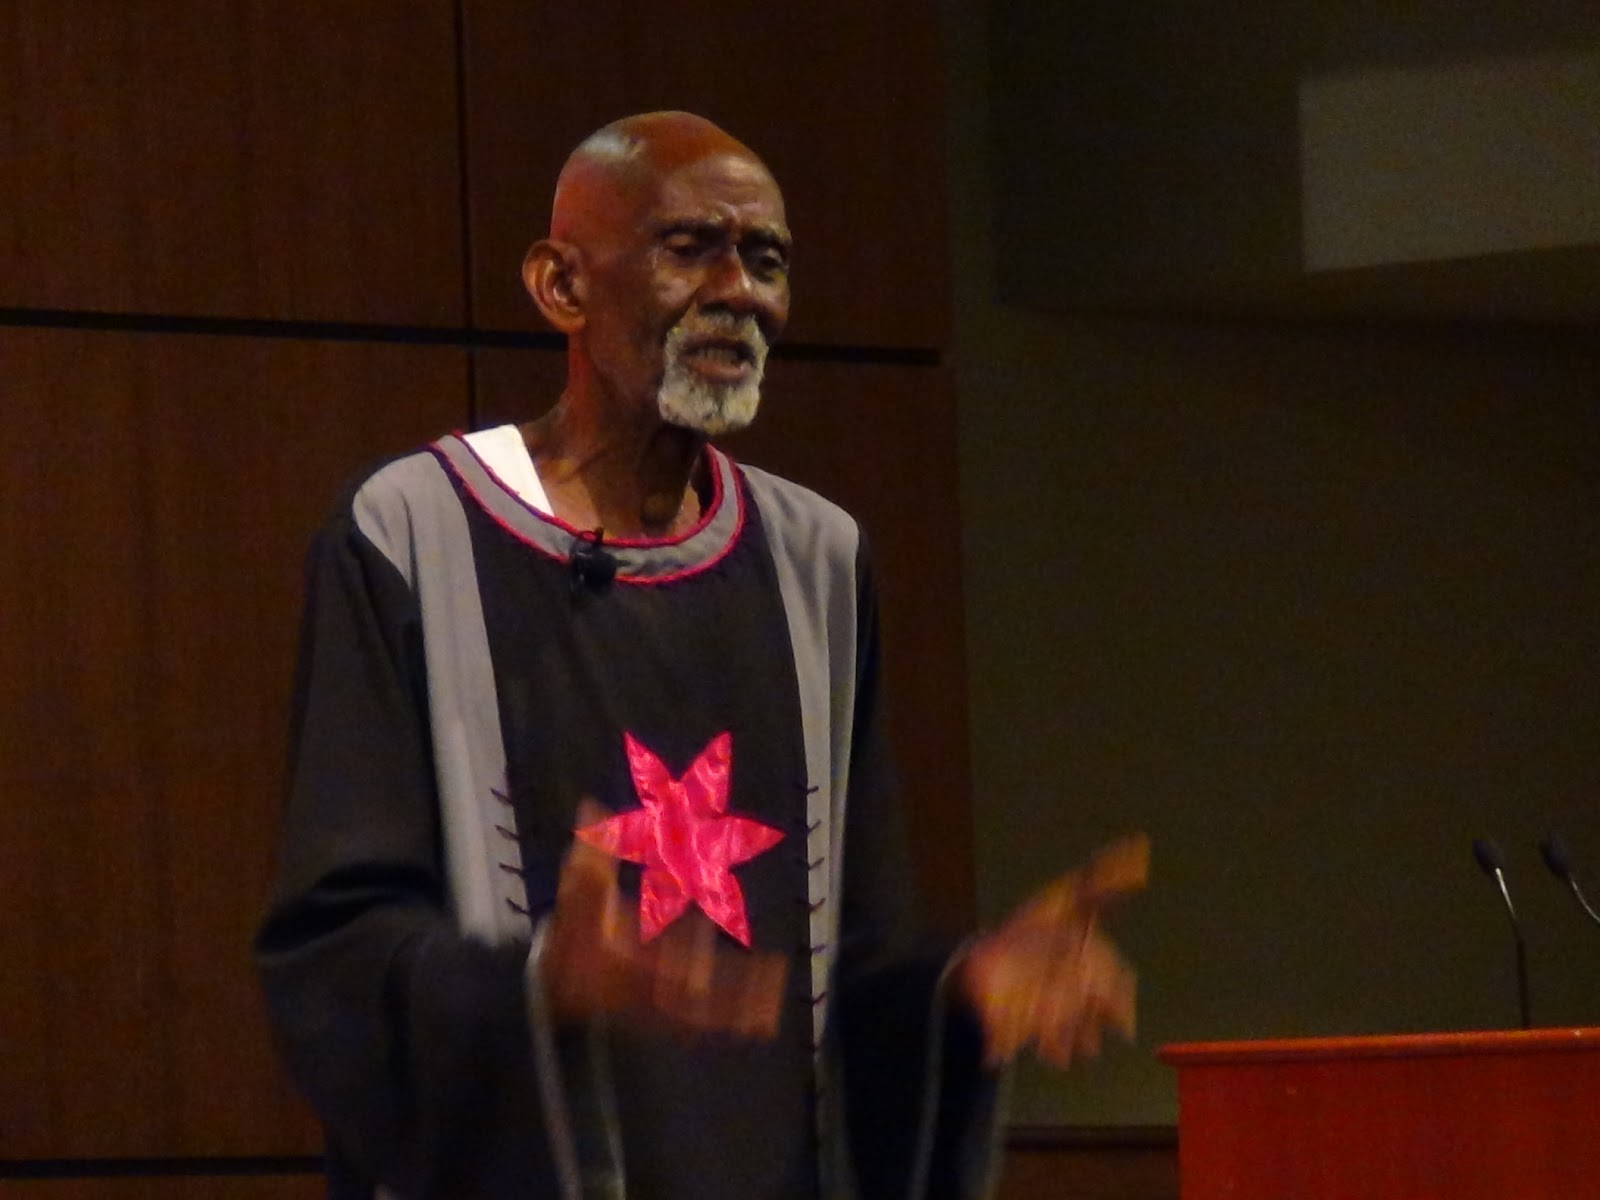 what is sebi Dr sebi, a native honduran who refers to himself as an intracellular therapist and herbalist, claims an organic, vegan, largely raw diet will cleanse your.